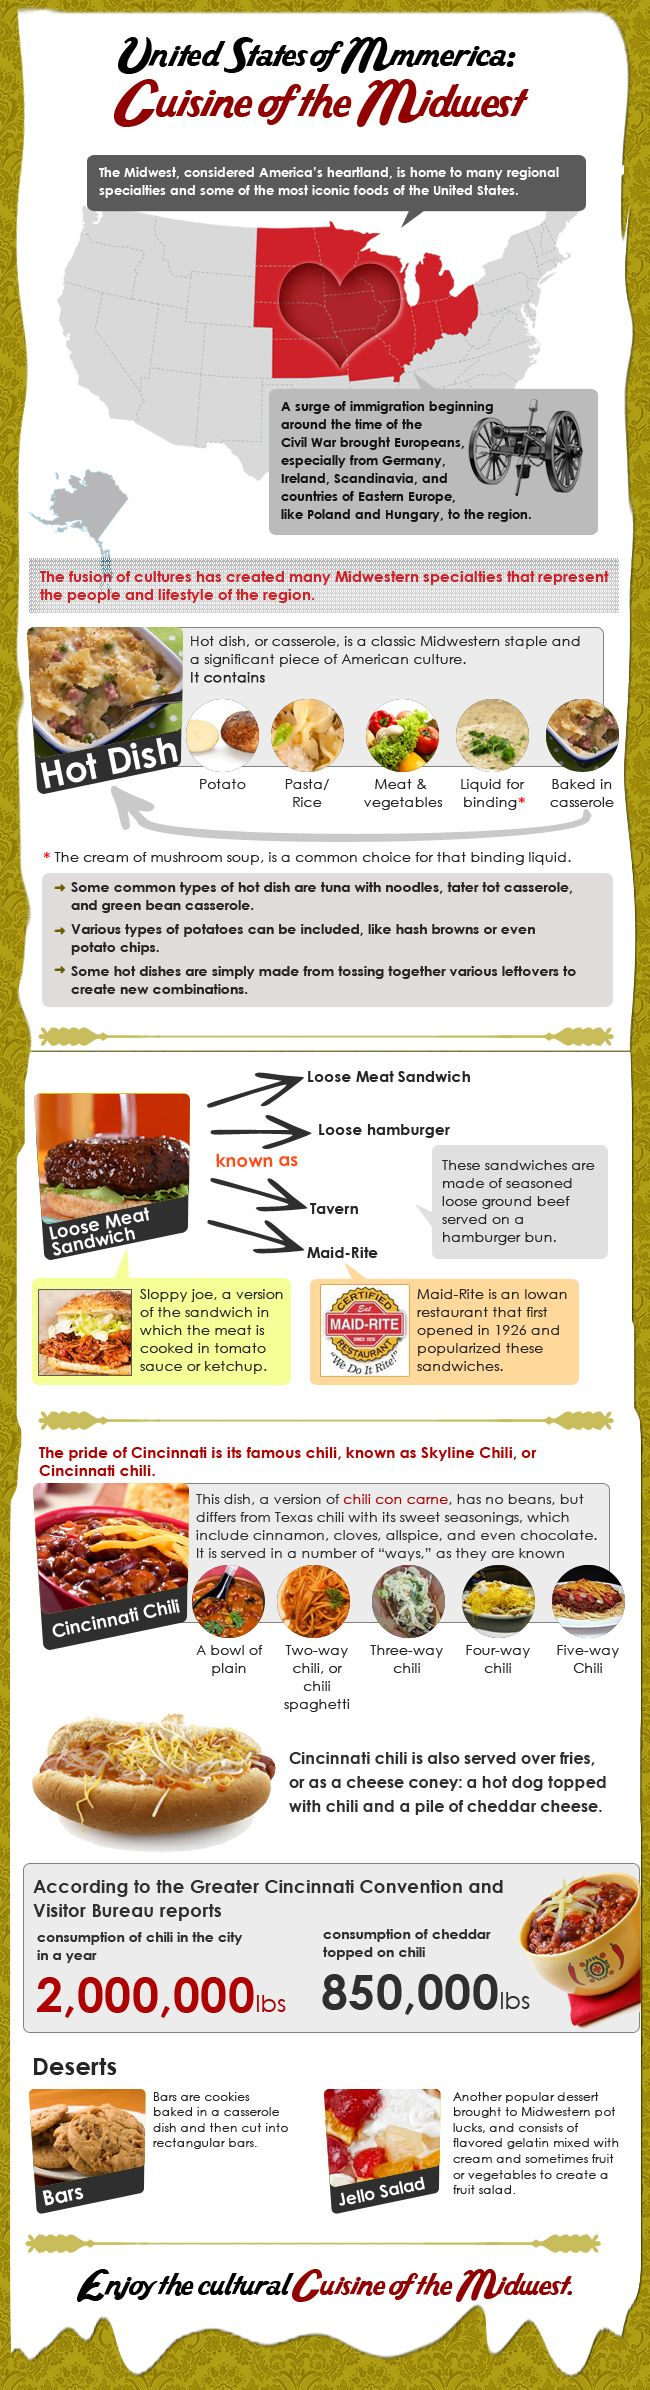 Best Food Of USA Infographics Images On Pinterest Kitchen - United states of america cuisine